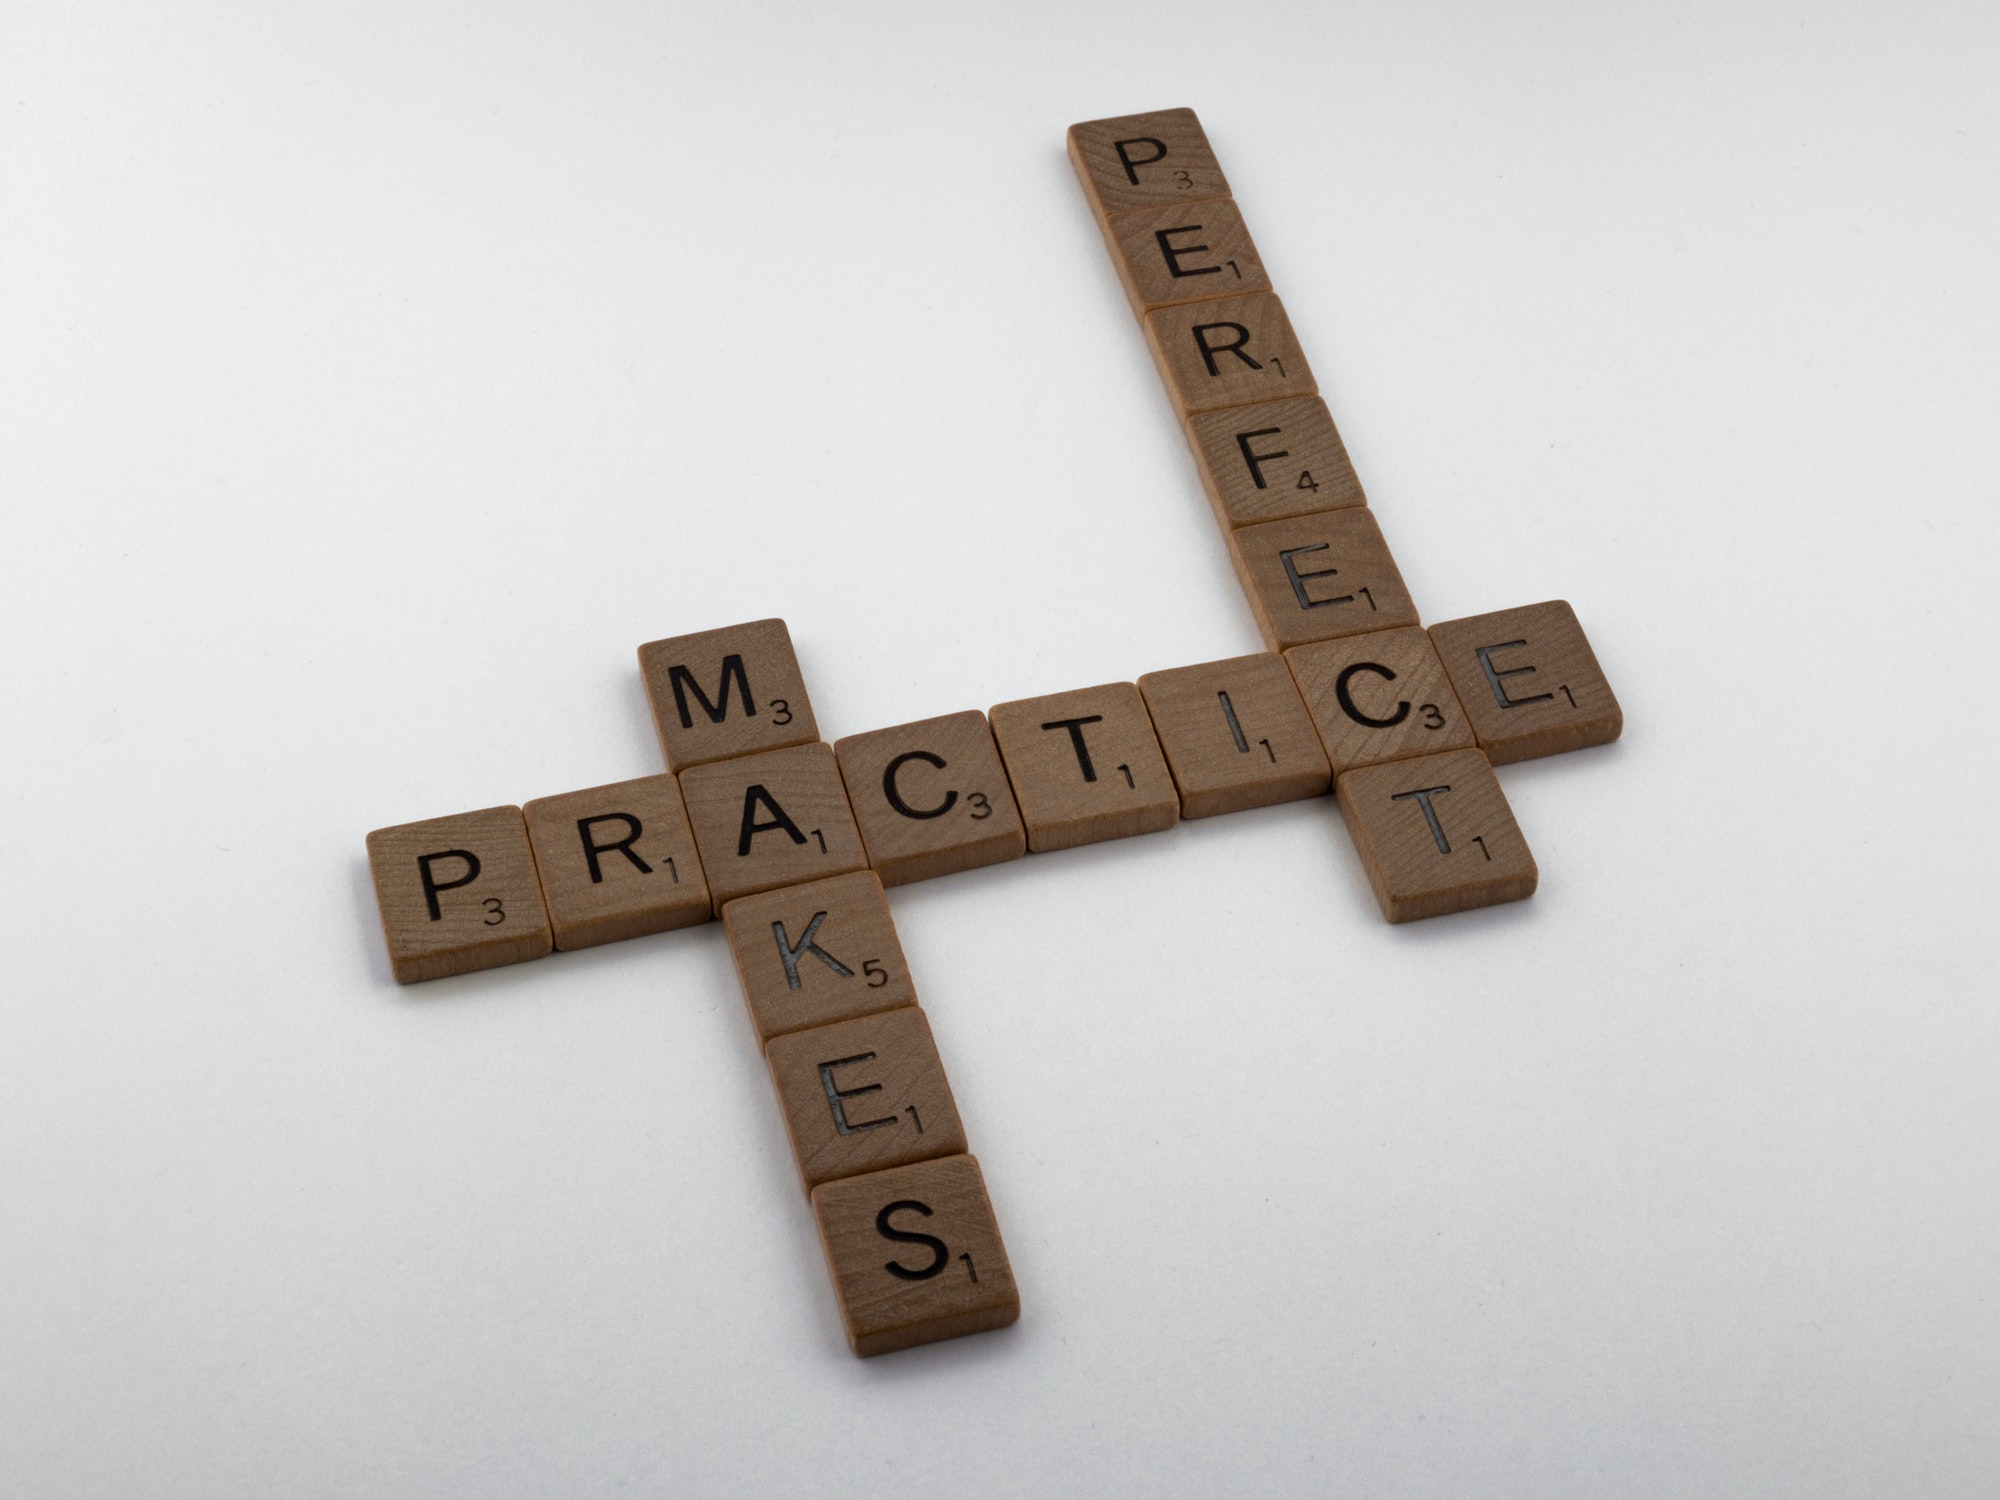 scrabble, scrabble pieces, lettering, letters, wood, scrabble tiles, white background, words, quote, letters, type, typography, design, layout, practice makes perfect, practice, practise, rehearse, try, try again, don't give up, learn, learning, repetition, study,